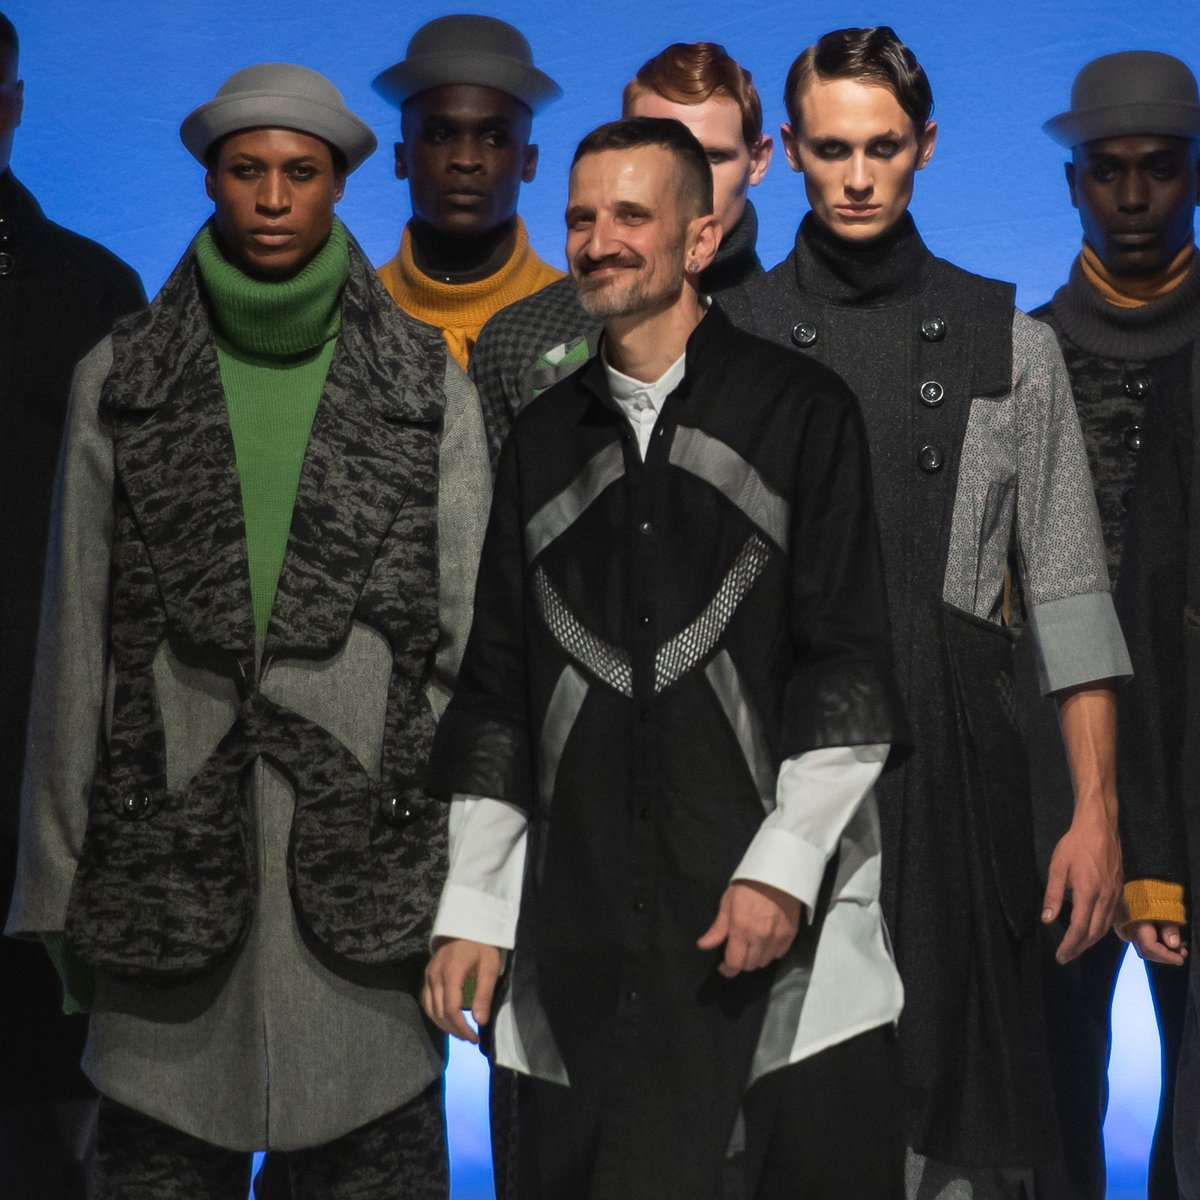 Sa Fashion Week On Twitter Renowned South African Designer Coenraad De Mol Passes Away The Passing Away Of Leading South African Designer Coenraad De Mol On Tuesday 19 May 2020 Has Left